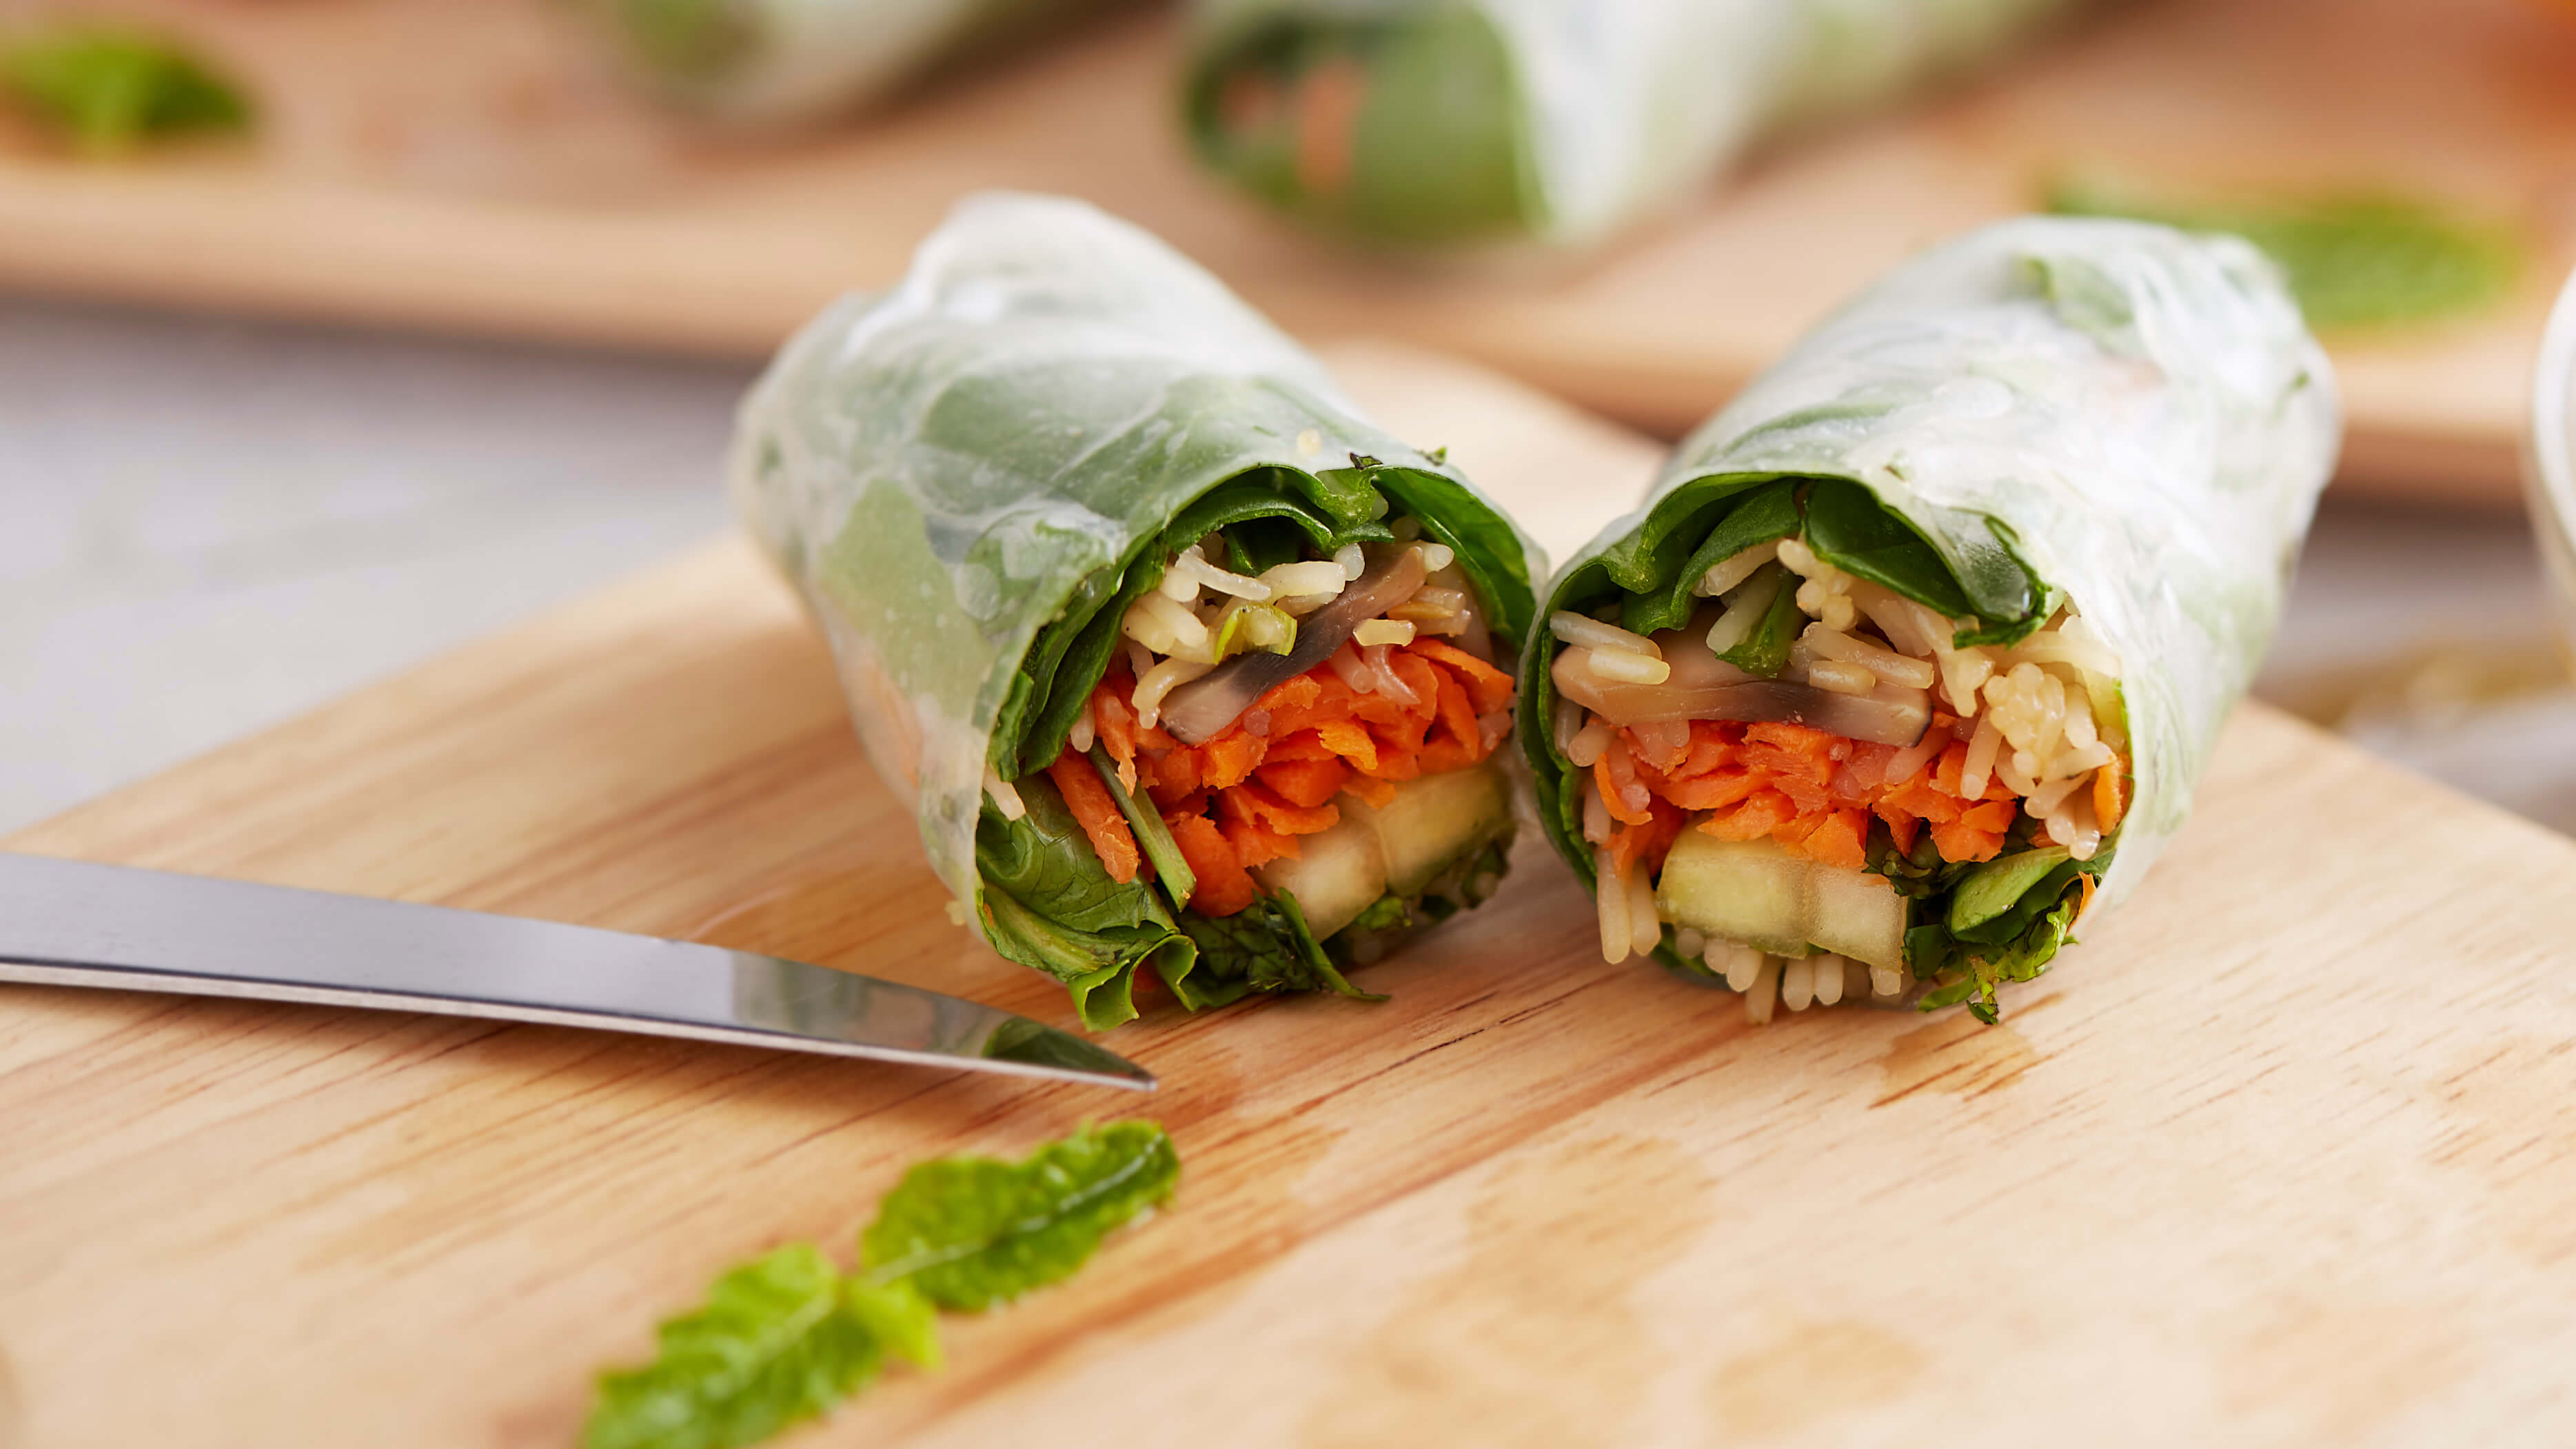 Spicy_Asian_Wraps_WP-1